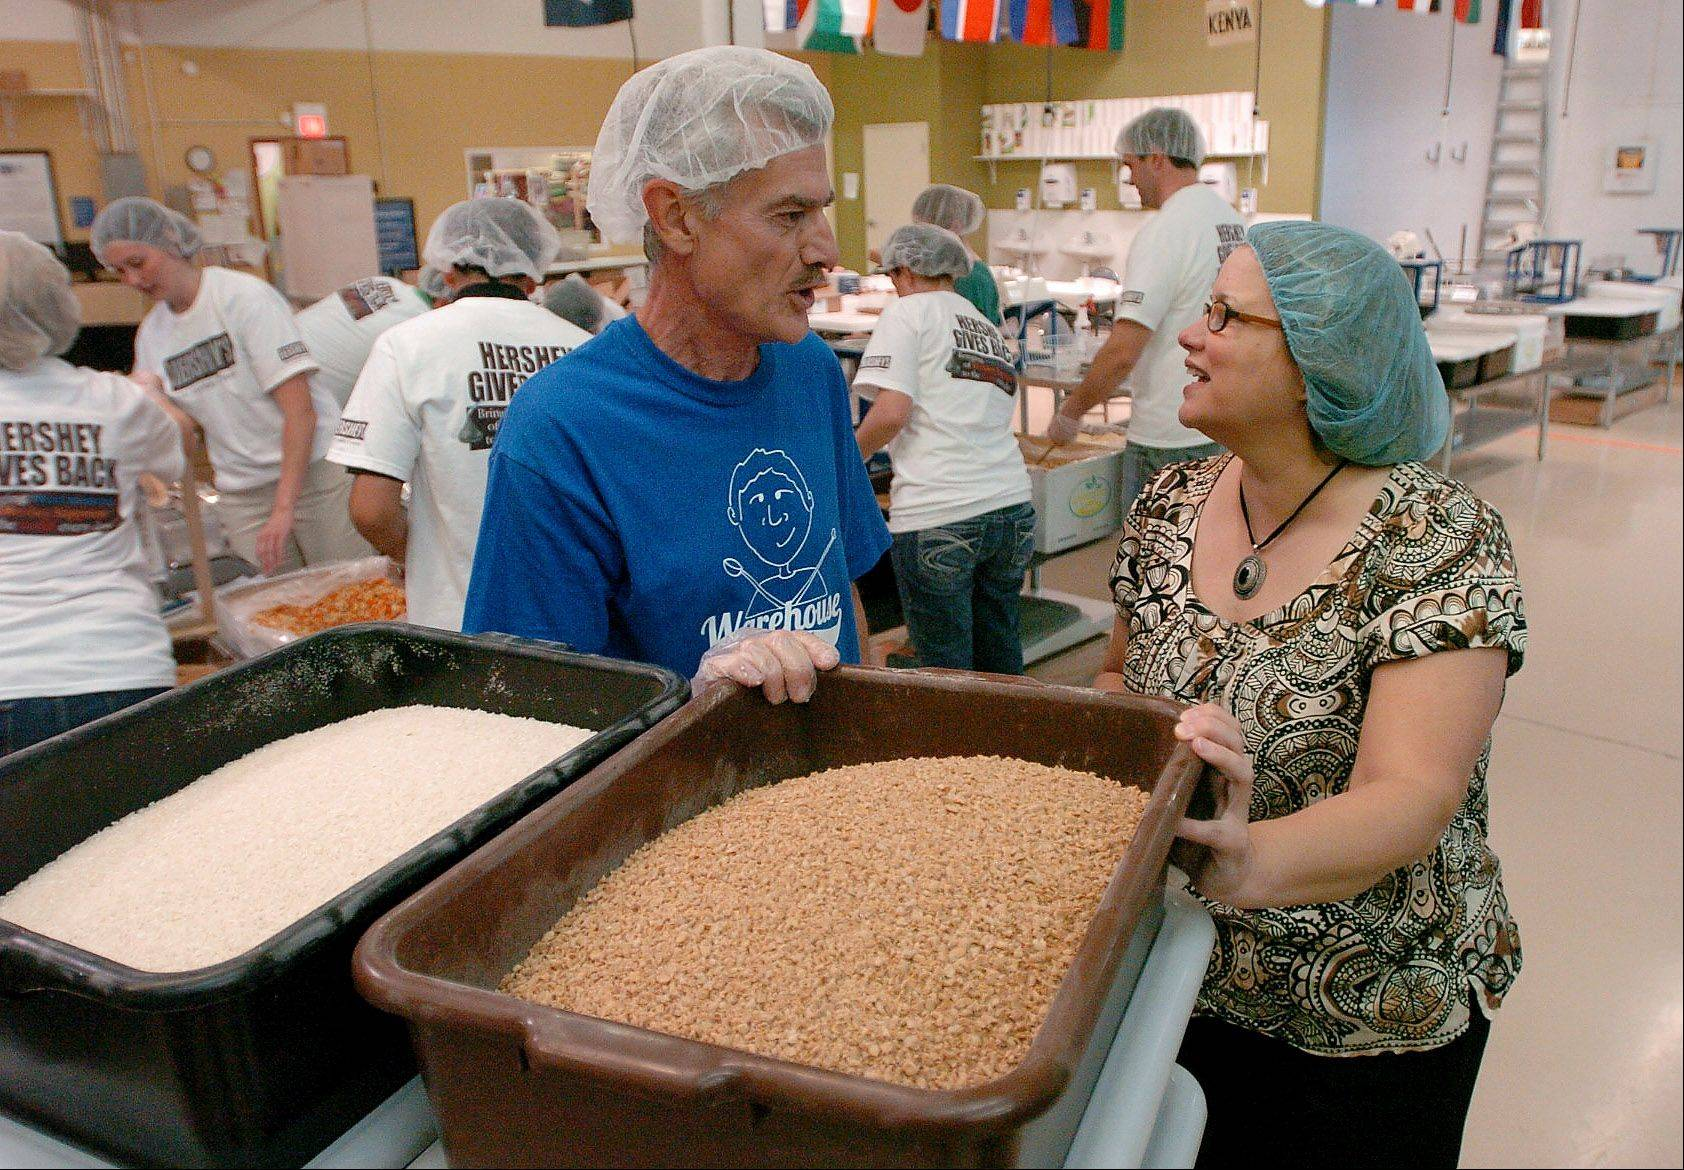 Marilyn Maurella, Chicagoland Development Advisor at Feed My Starving Children in Schaumburg, chats with volunteer Rich Direnzo.